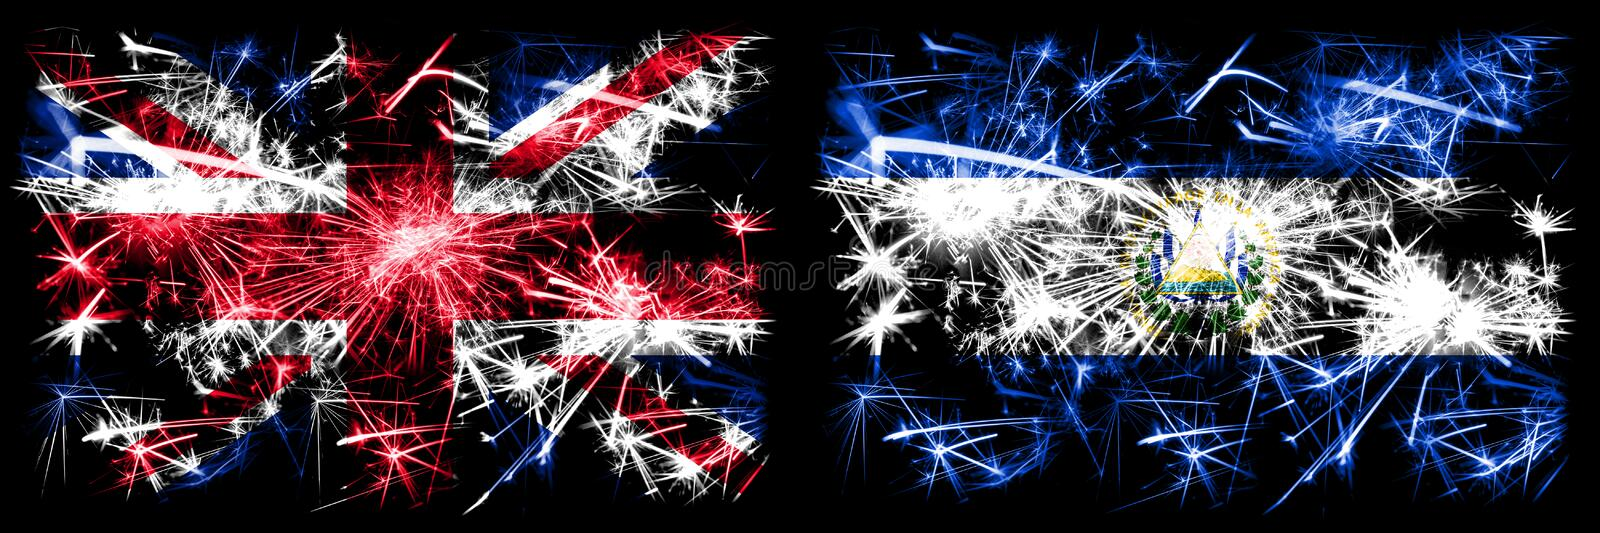 Great Britain, United Kingdom vs El Salvador, Salvadorian New Year celebration travel sparkling fireworks flags concept background. Combination of two abstract royalty free illustration